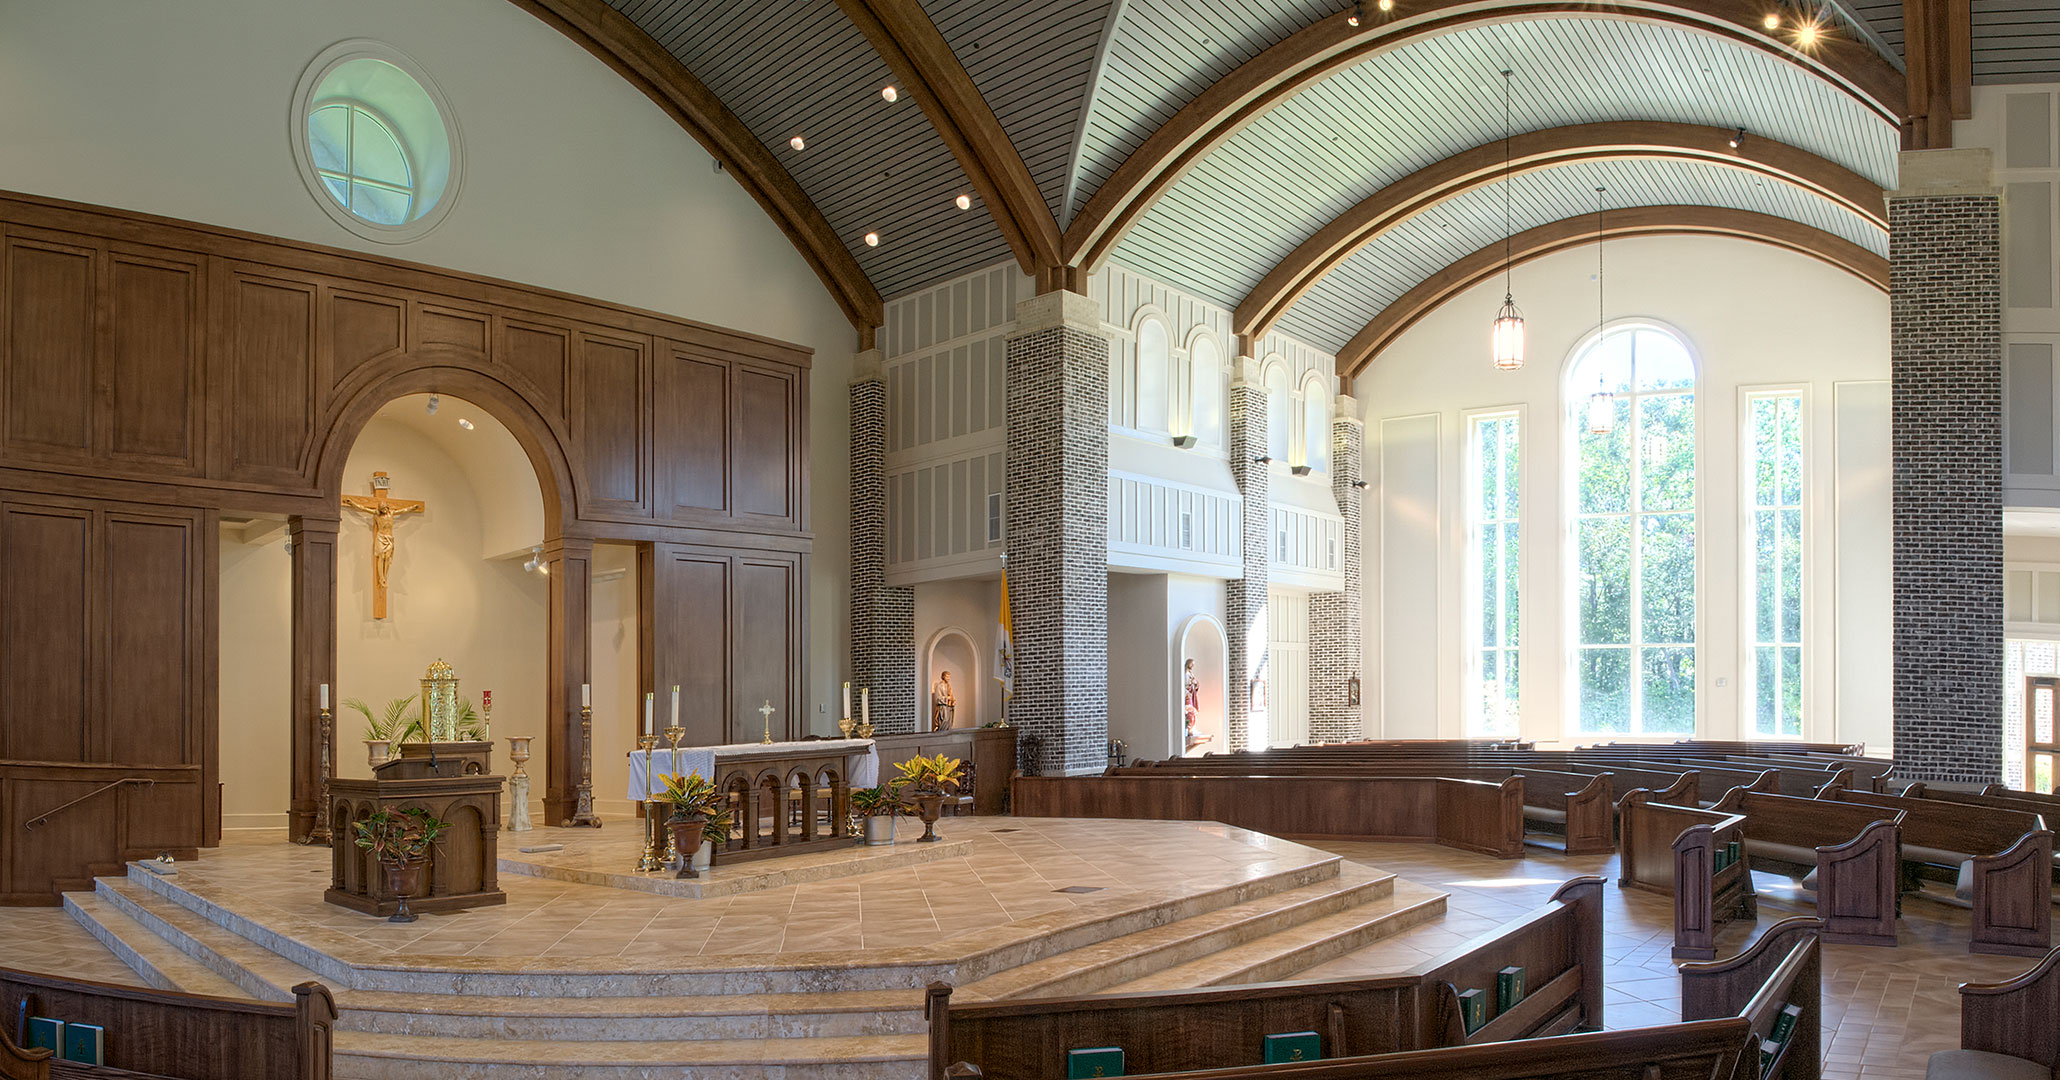 Boudreaux architects designed the interiors for St. Anne in Richmond Hill, GA.